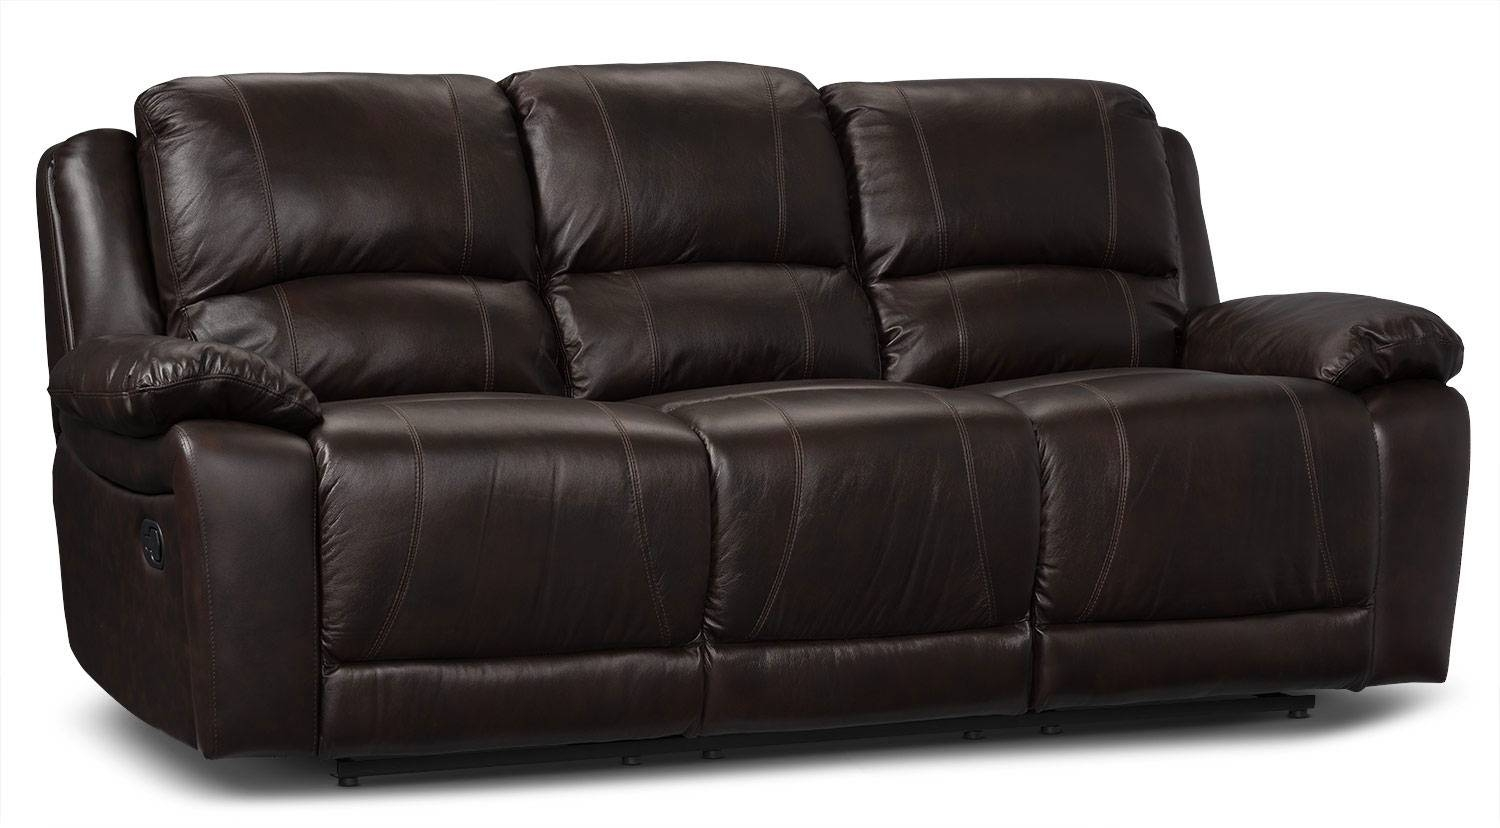 Marco Genuine Leather Power Reclining Sofa - Chocolate | The Brick for The Brick Leather Sofa (Image 13 of 30)